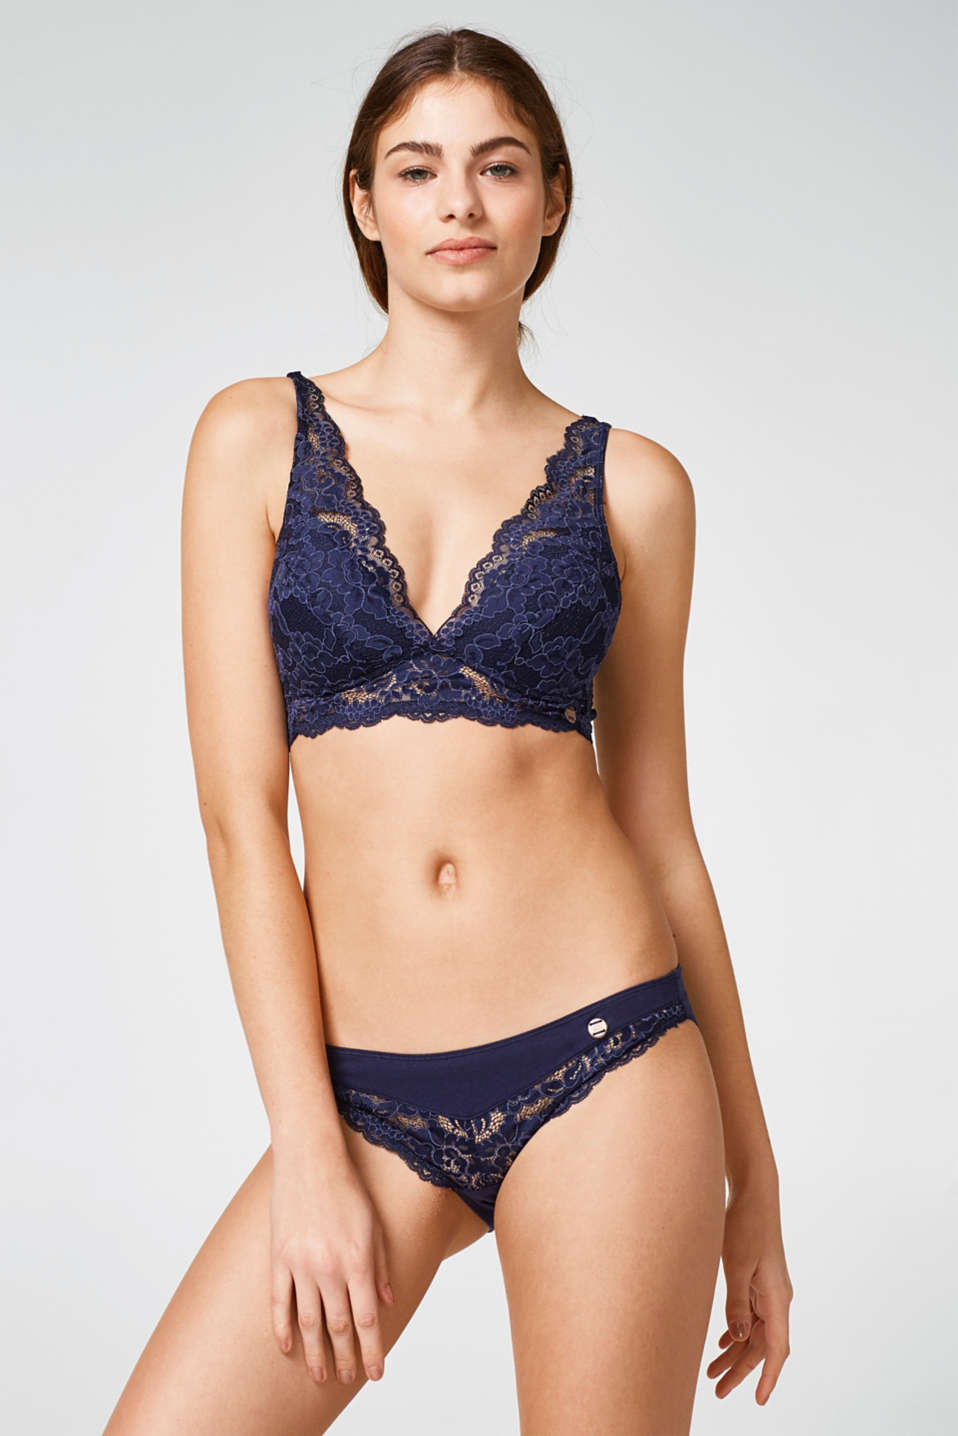 Esprit - Hipster briefs with elegant crocheted lace